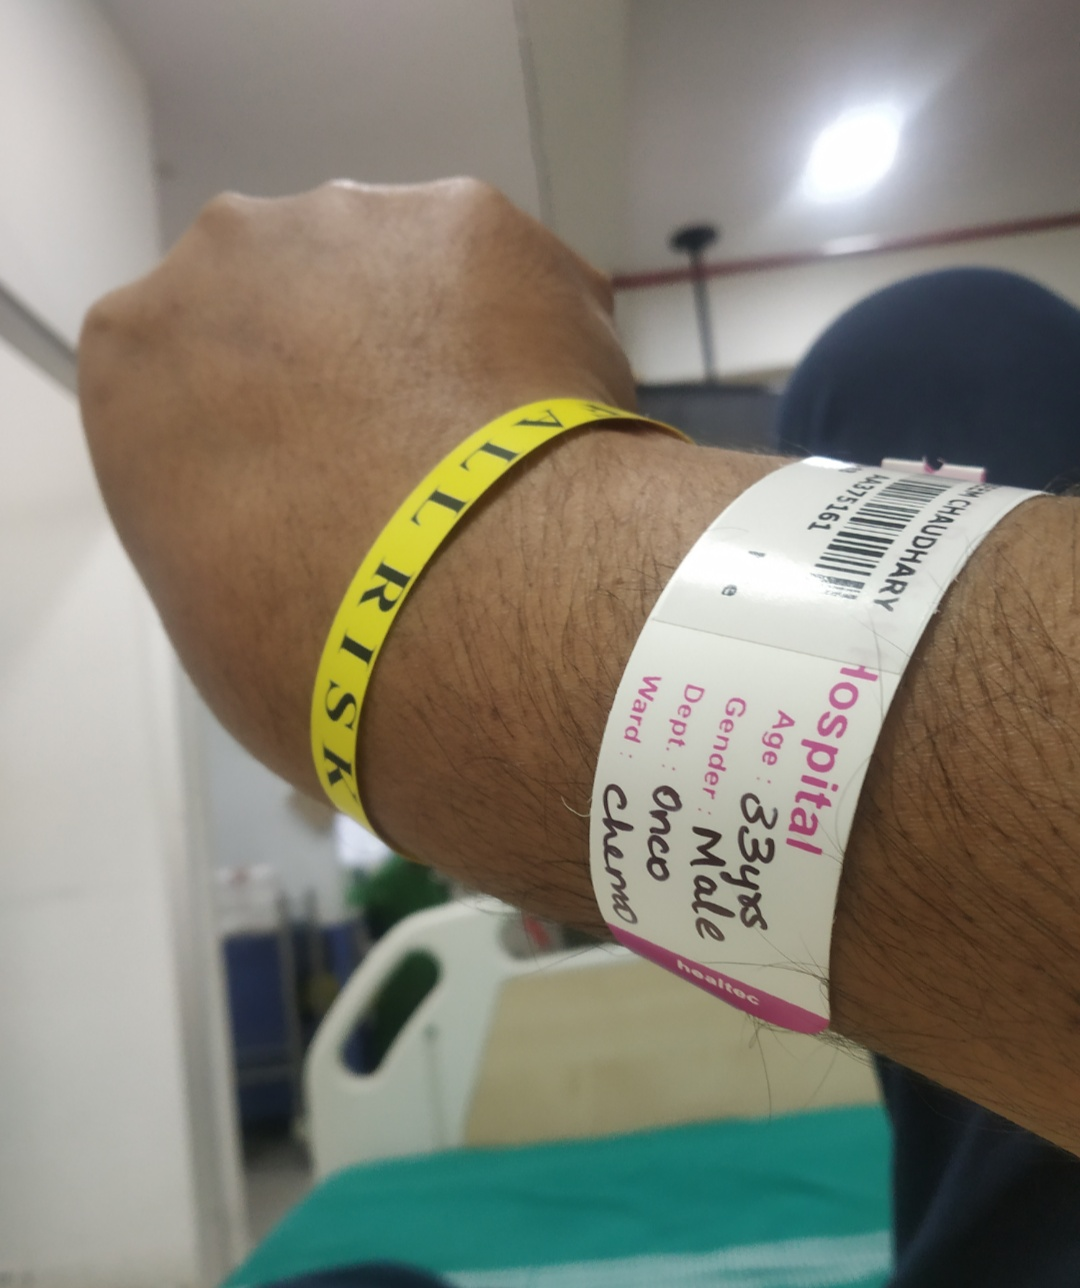 Finished 10 chemotherapy sessions